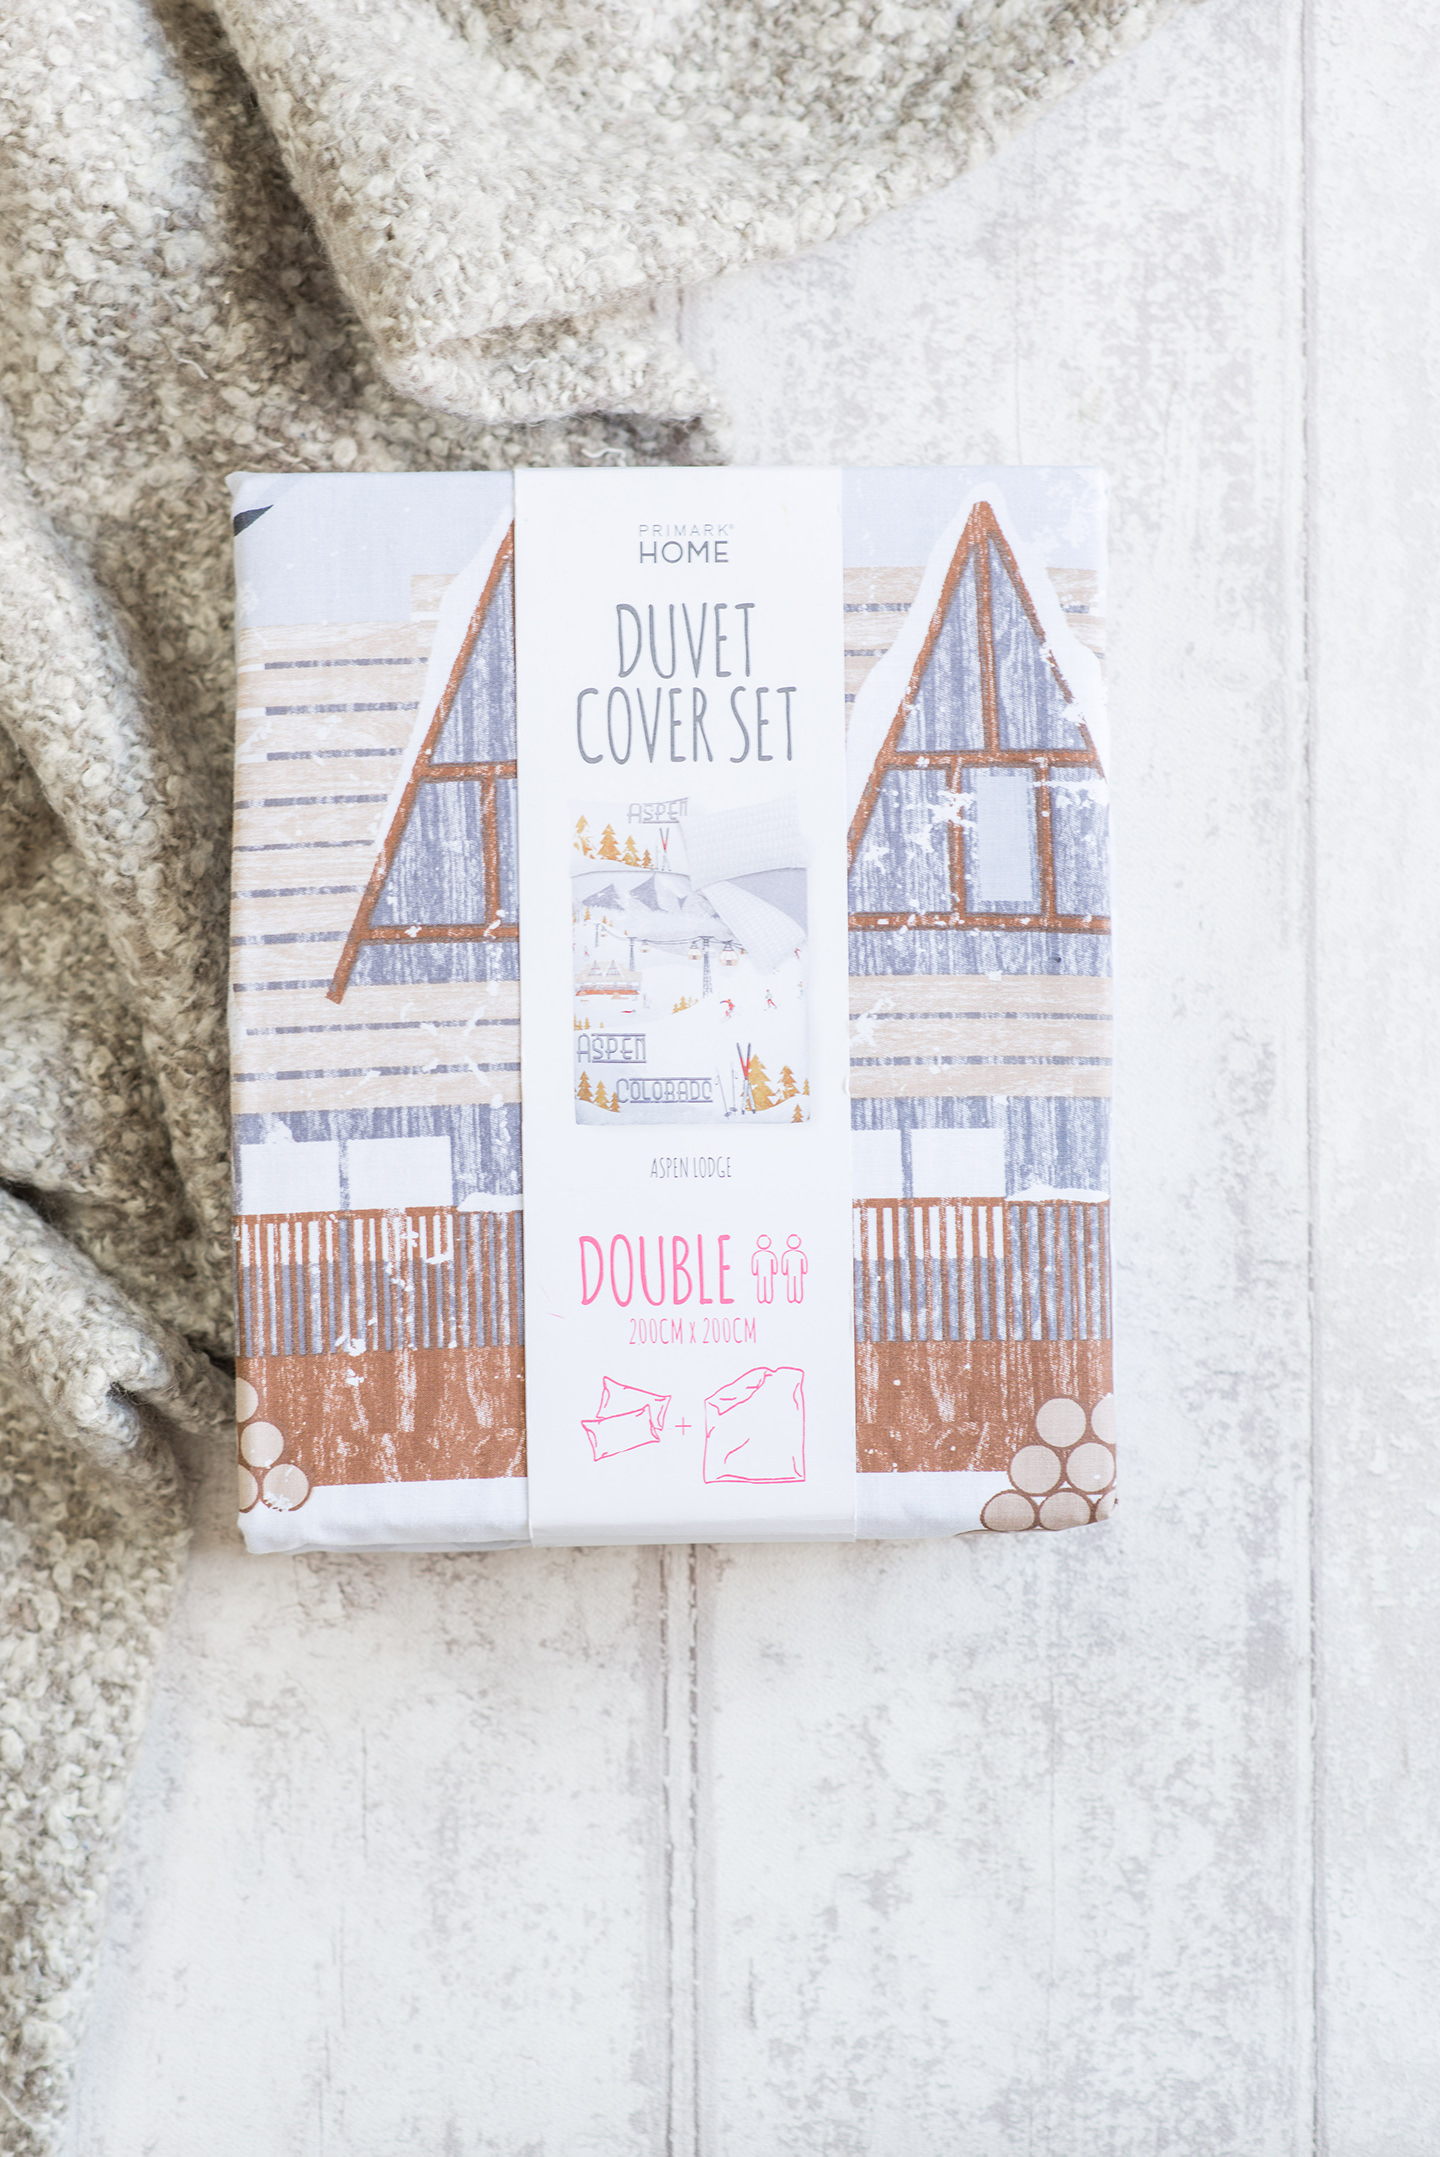 Blog-Mode-and-The-City-LIfestyle-5-petites-choses-149-couette-primark-ski-lodge-aspen